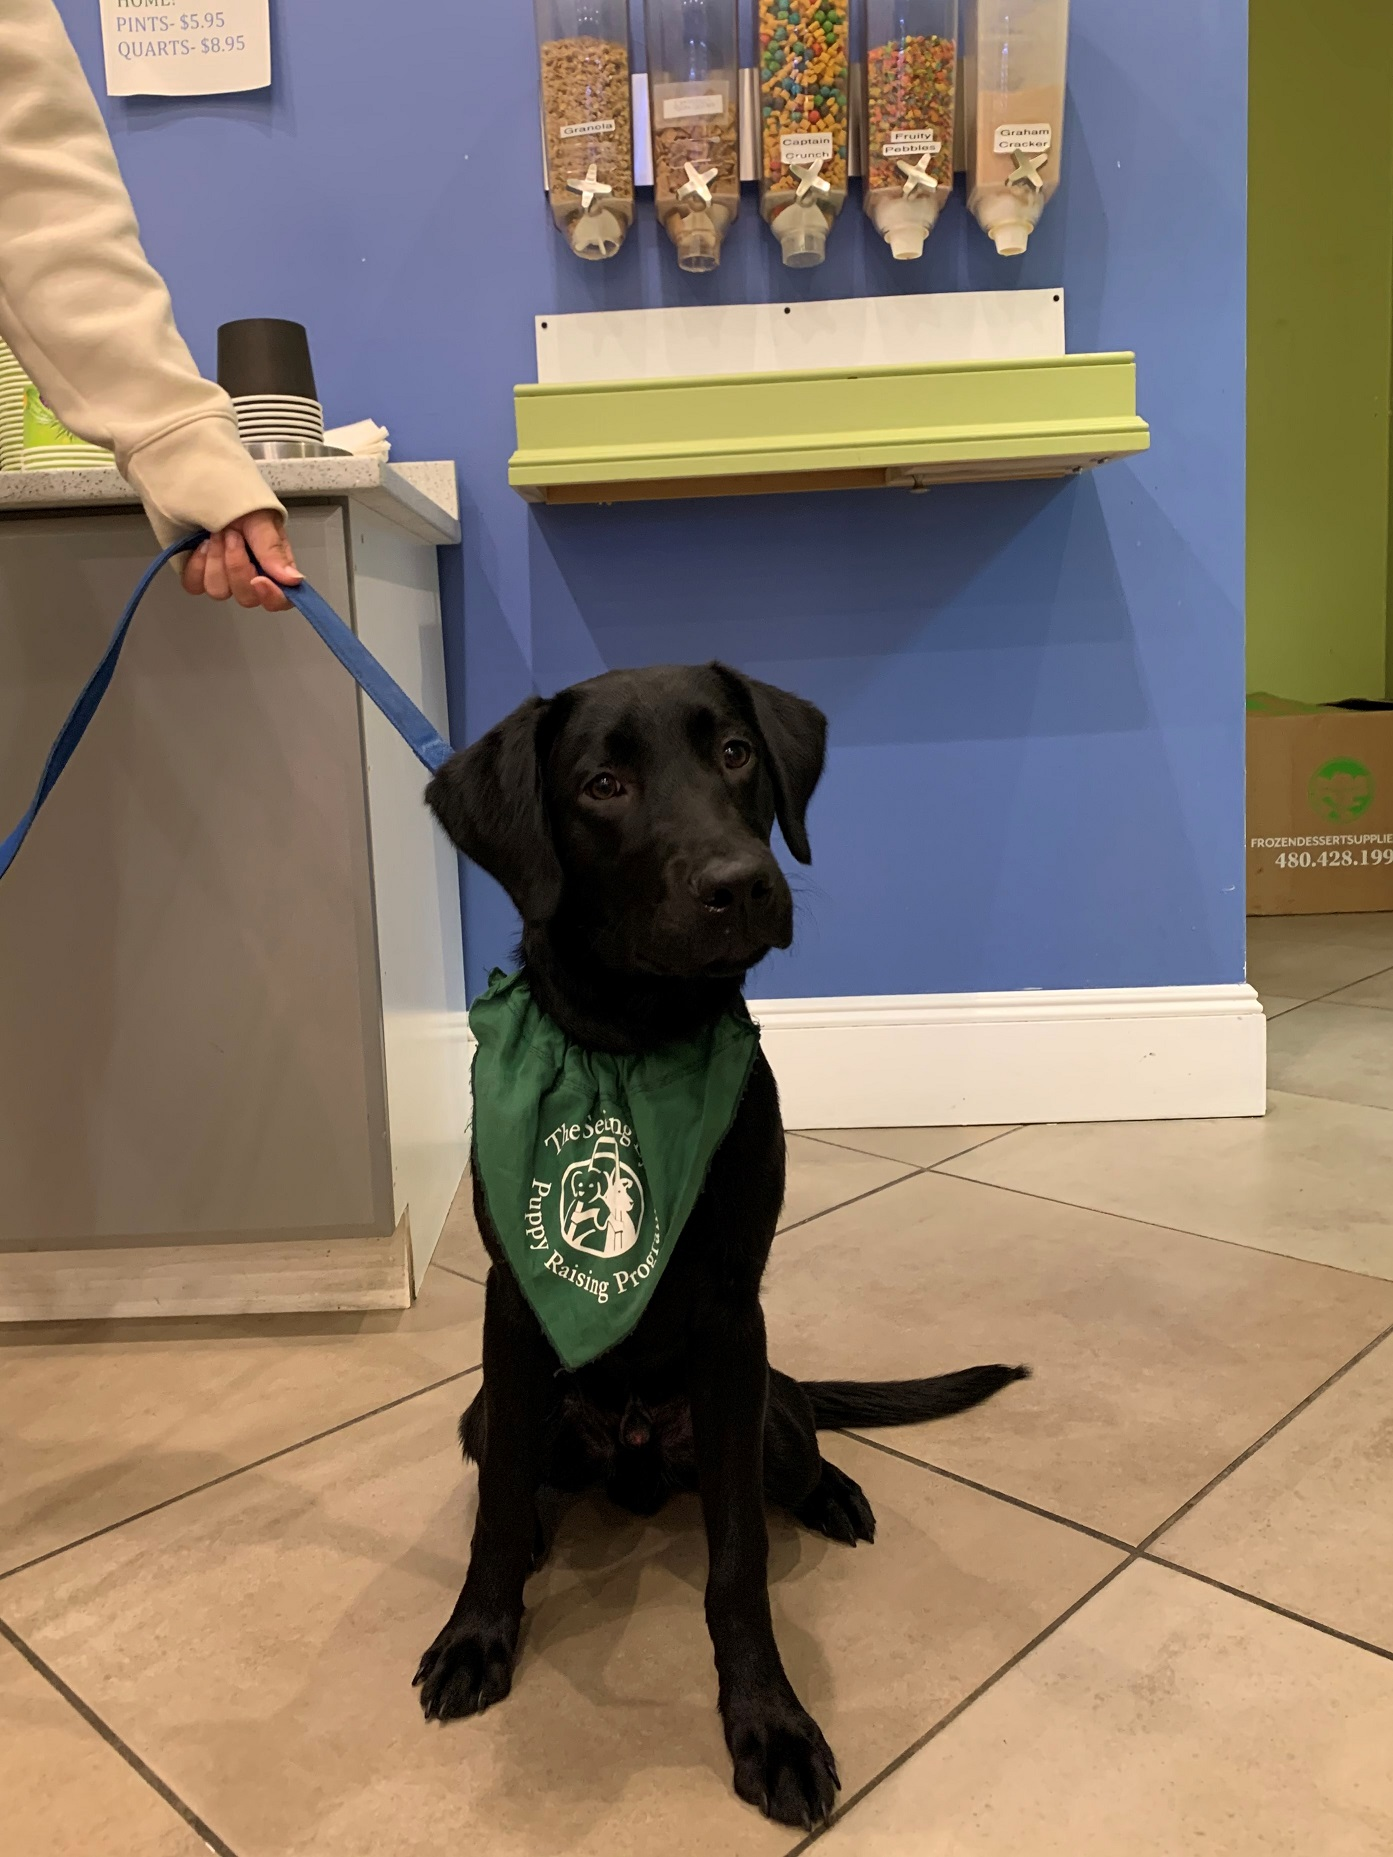 Hugh, a black Lab, sits before the toppings dispensers at a frozen yogurt shop.